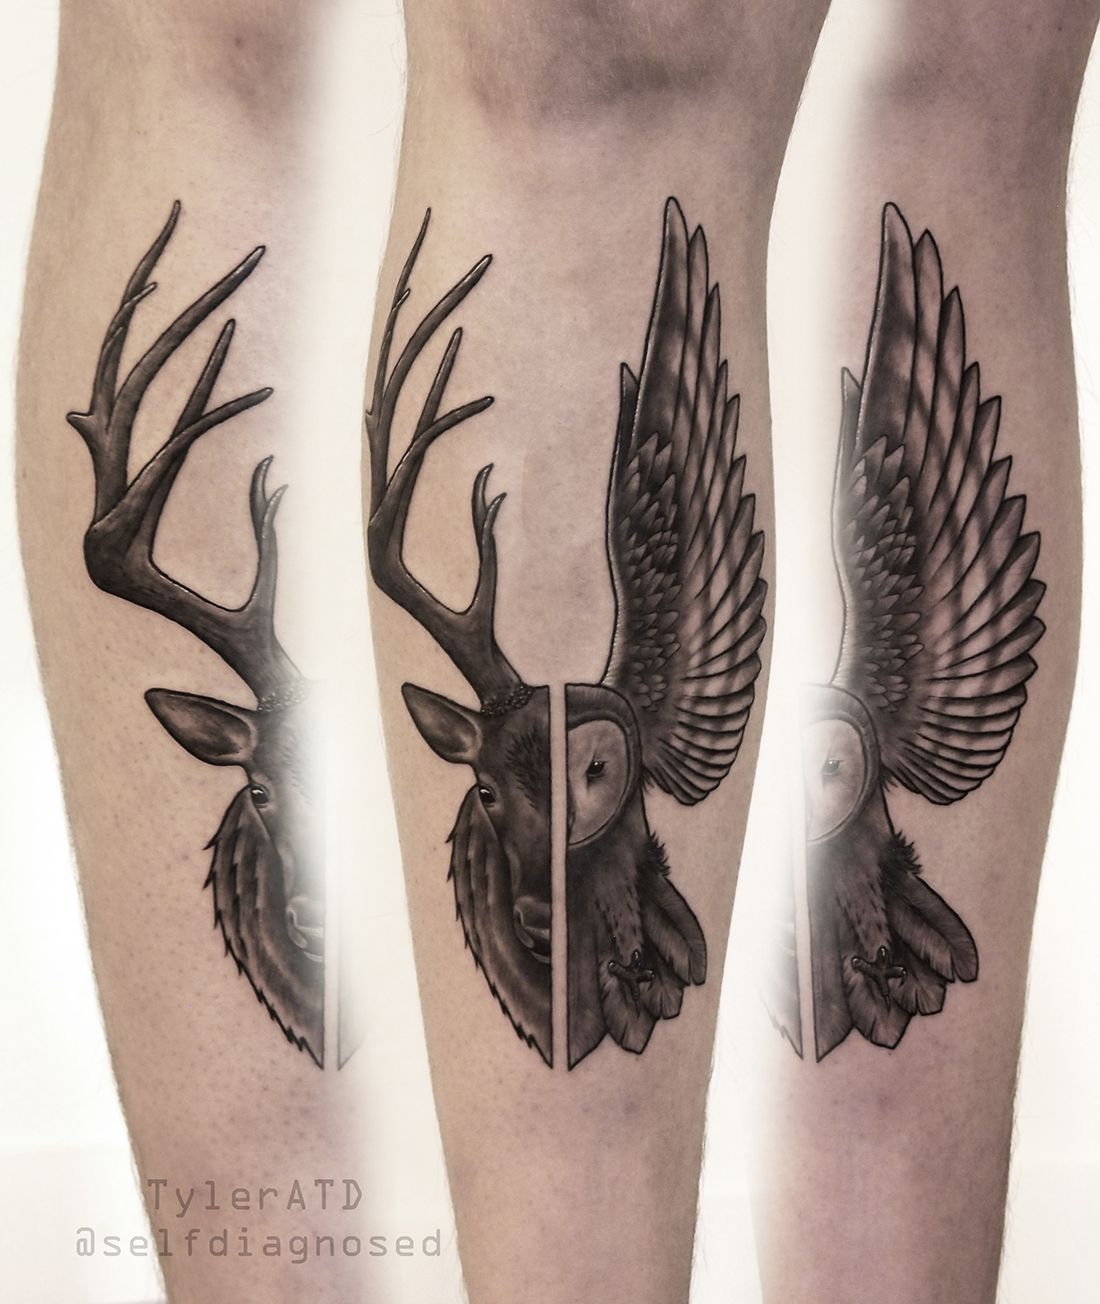 Deer and owl tattoo by TylerATD location: Whistler, Canada. instagram: @selfdiagnosed